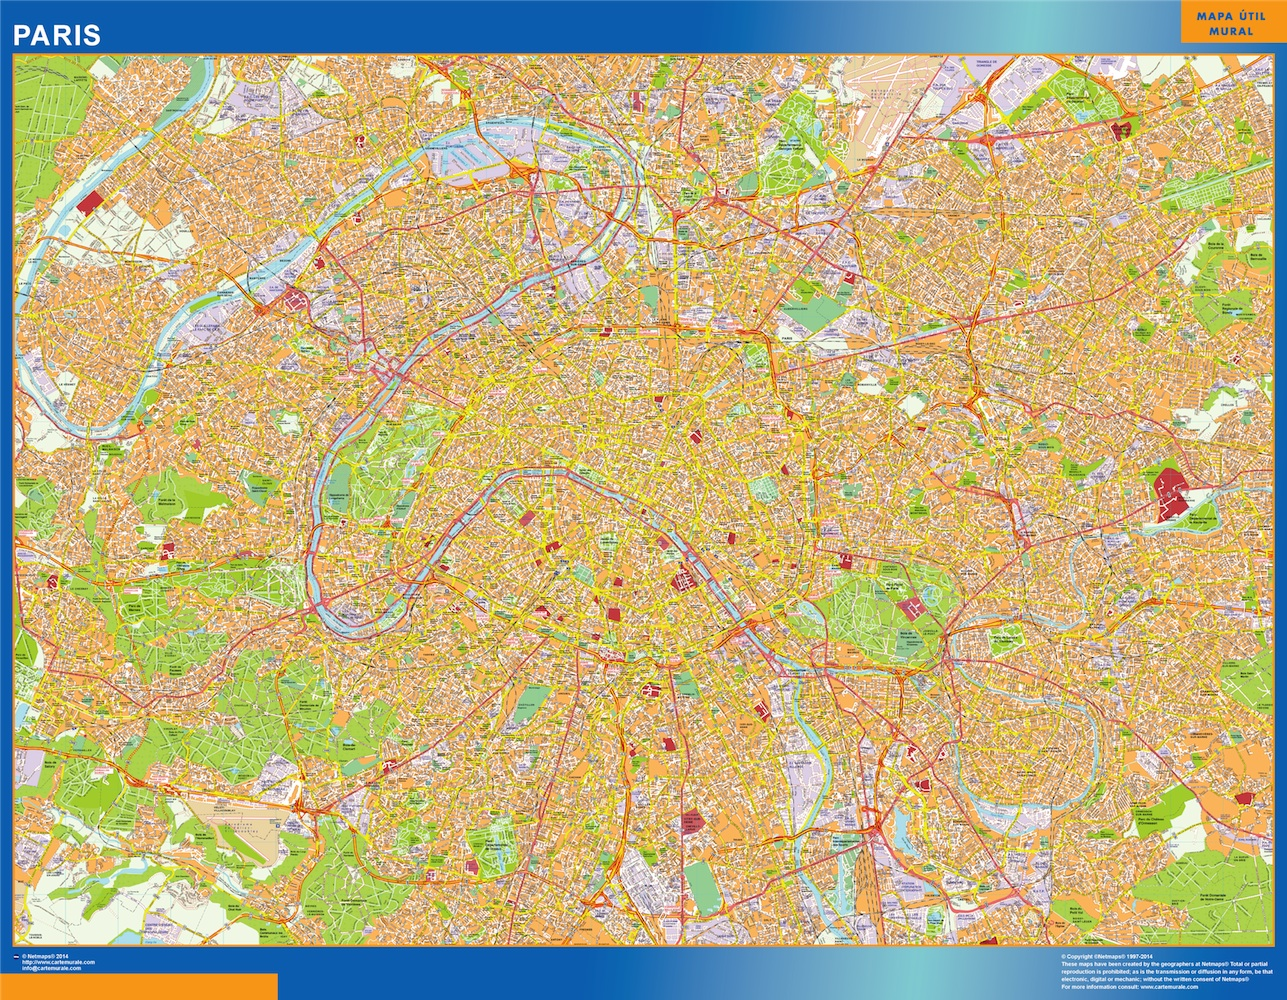 World Wall Maps Store: paris street map . More than 10 000 maps ...